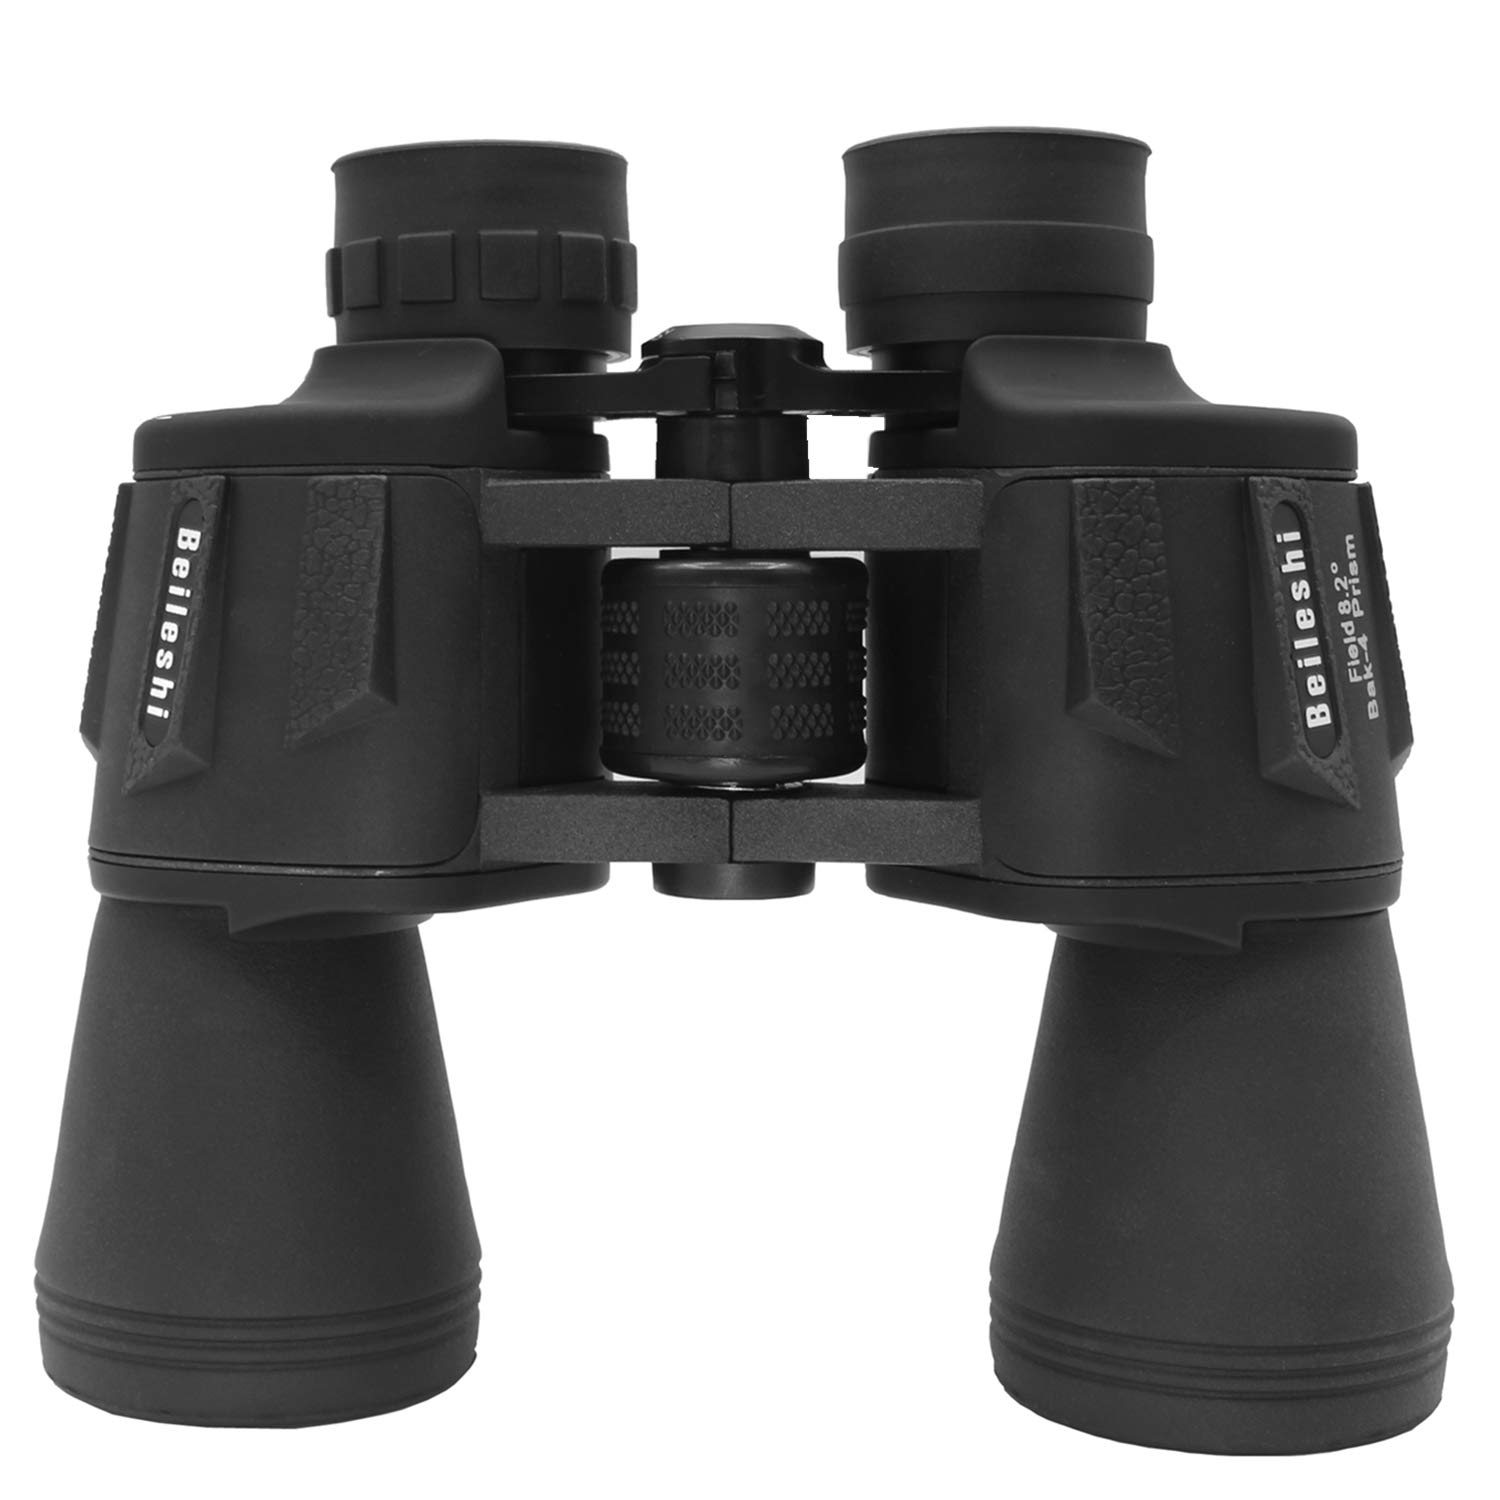 beileshi 10X Binocularx Telescope Bird Watching Lens-with Carrying Case for Adults by beileshi